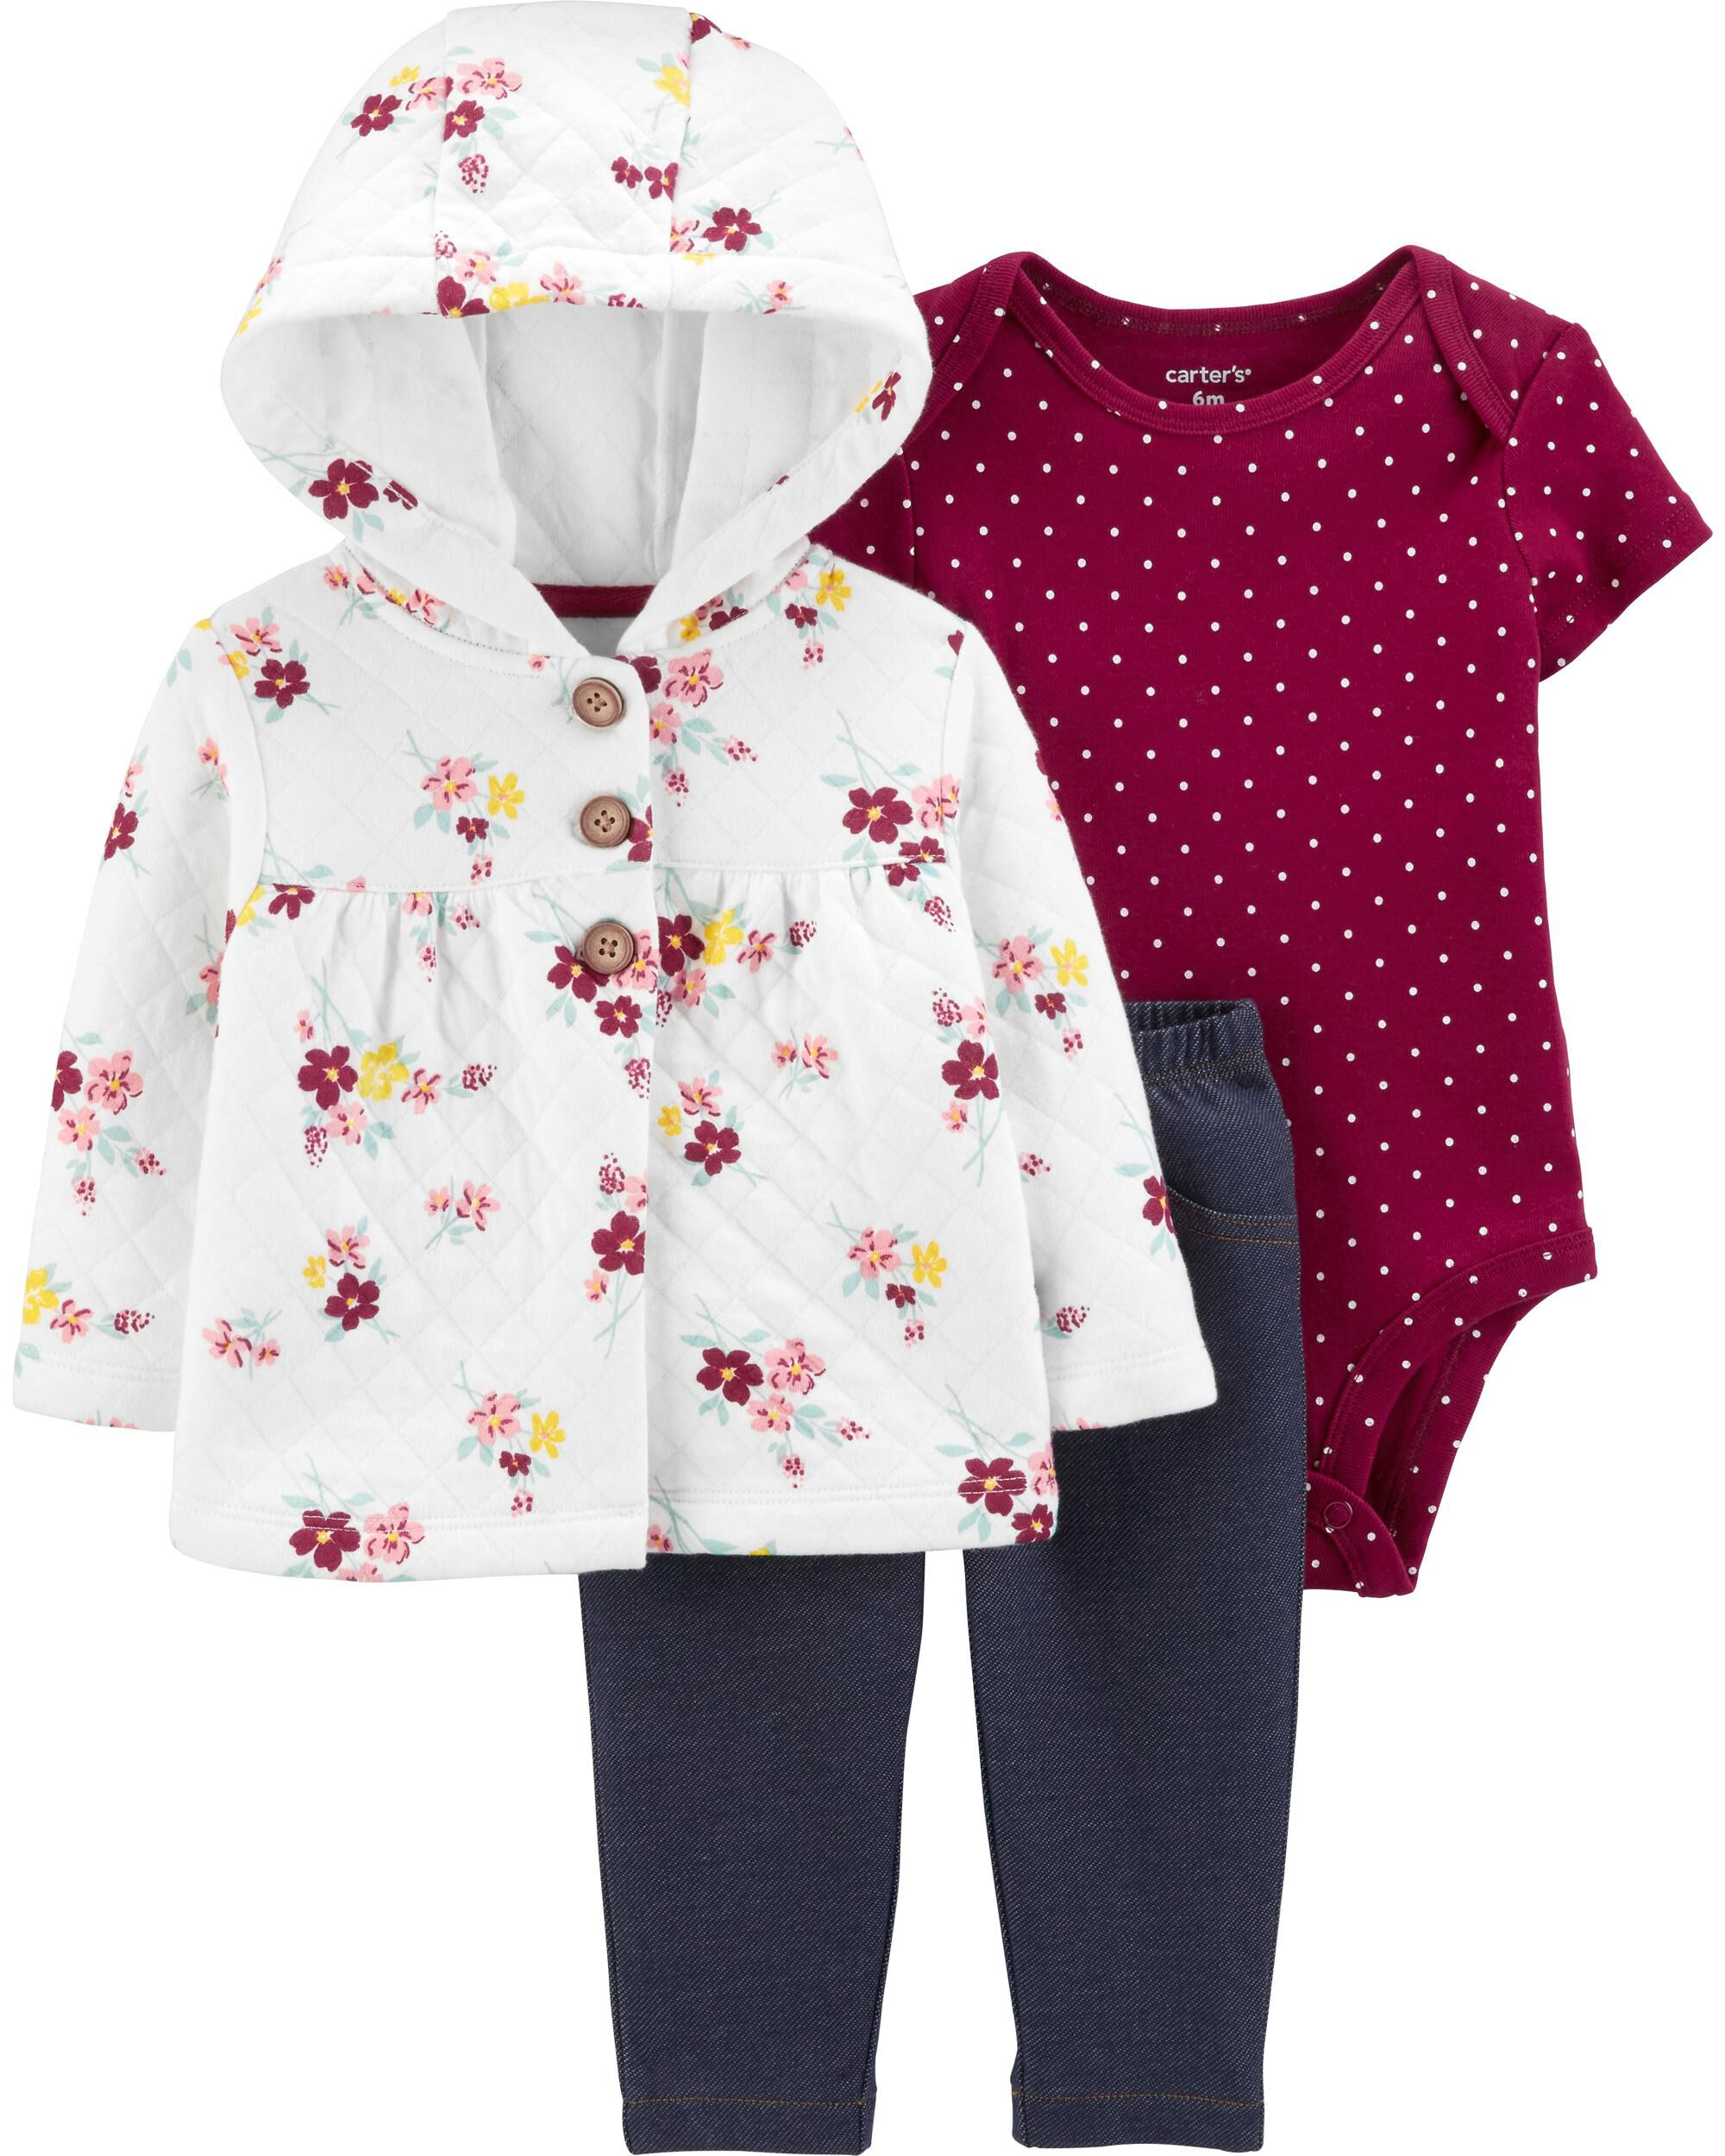 3-Piece Quilted Little Jacket Set